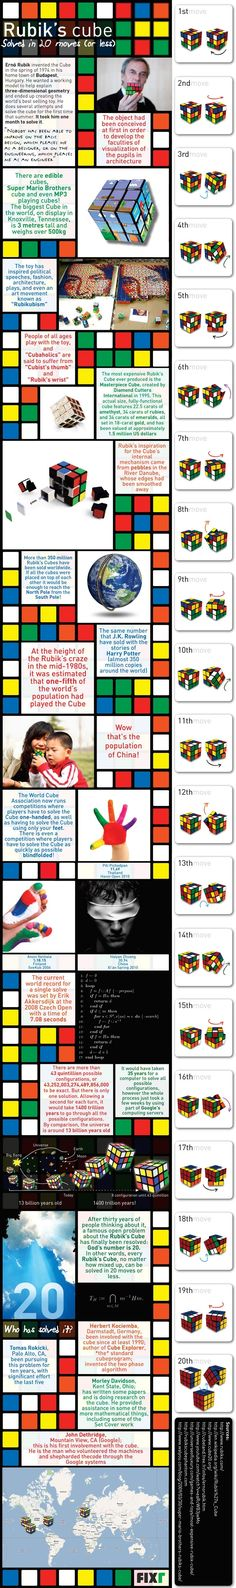 Rubik's Cube mastery - time to get it out and practice.